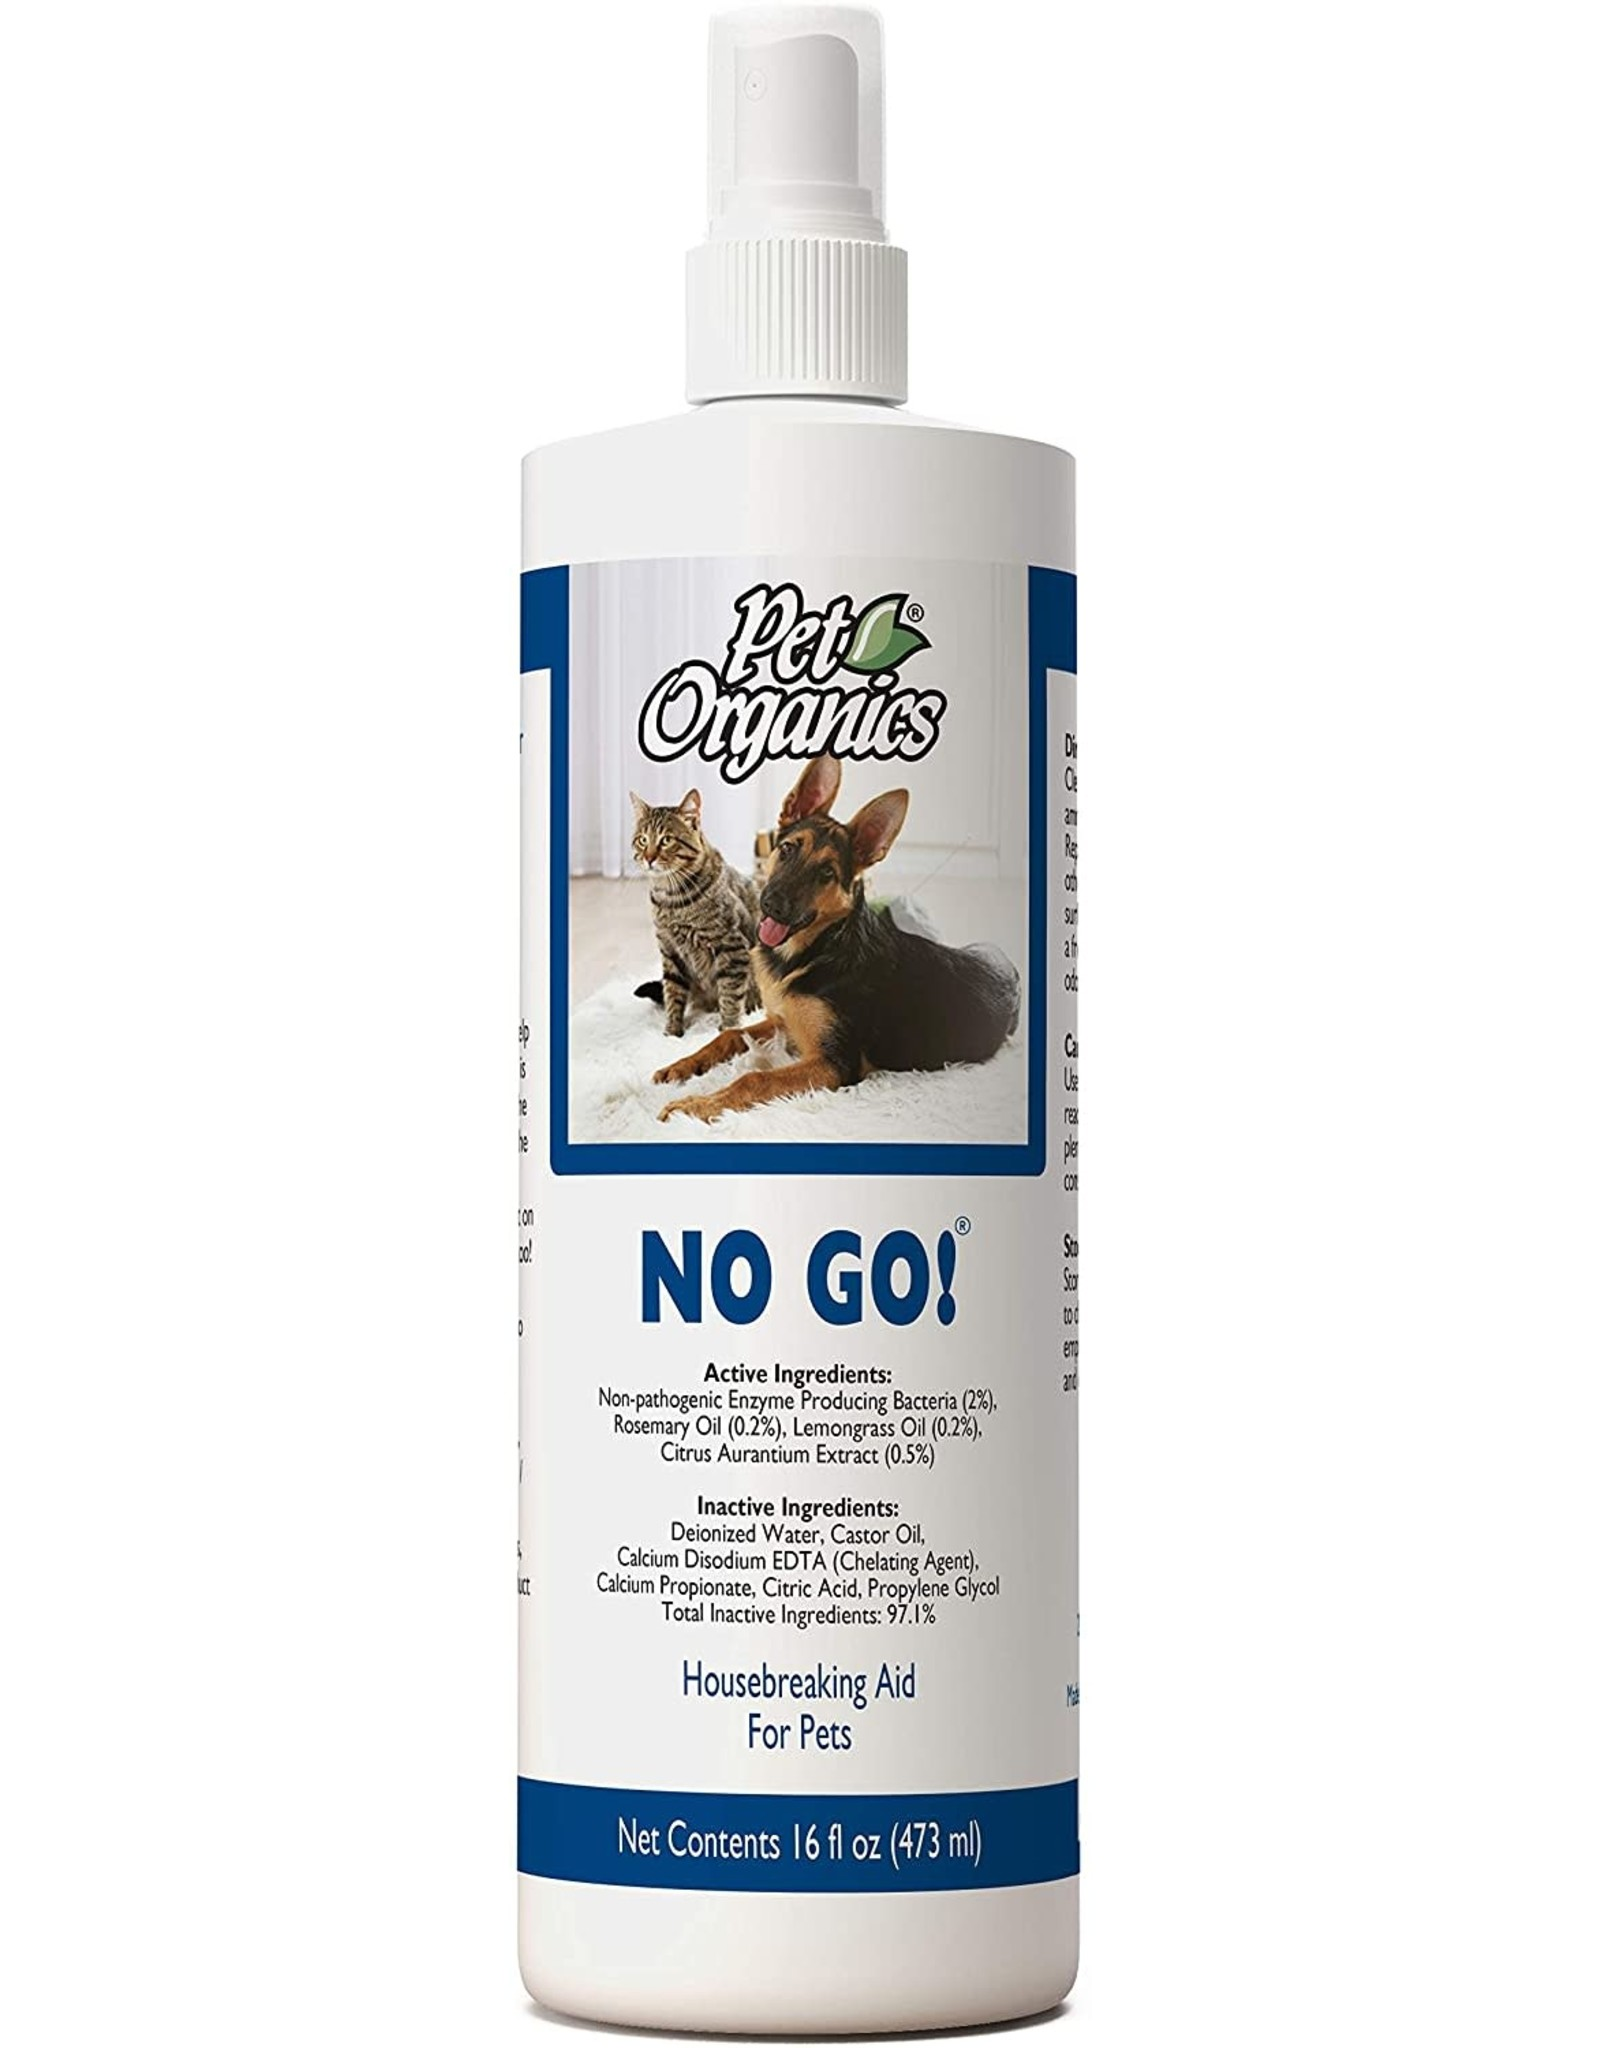 NaturVet NATURVET PET ORGANICS NO GO HOUSEBREAKING AID SPRAY 16OZ